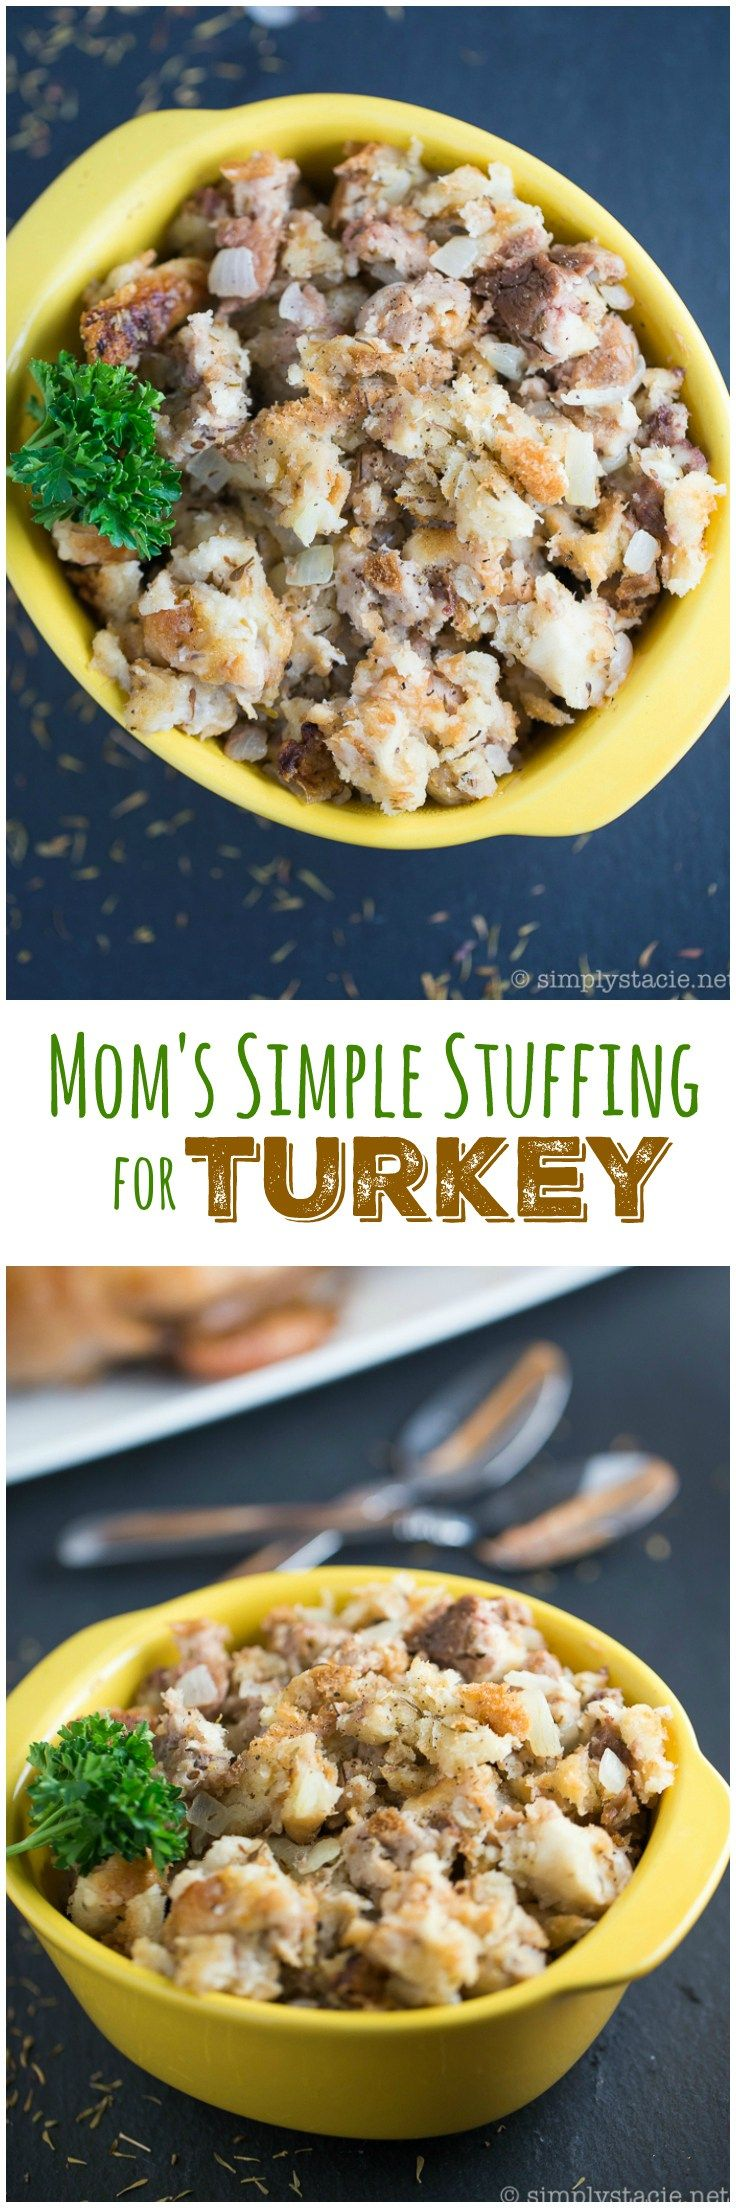 Mom's Simple Stuffing for Turkey - Make this recipe once and you'll remember it for life!